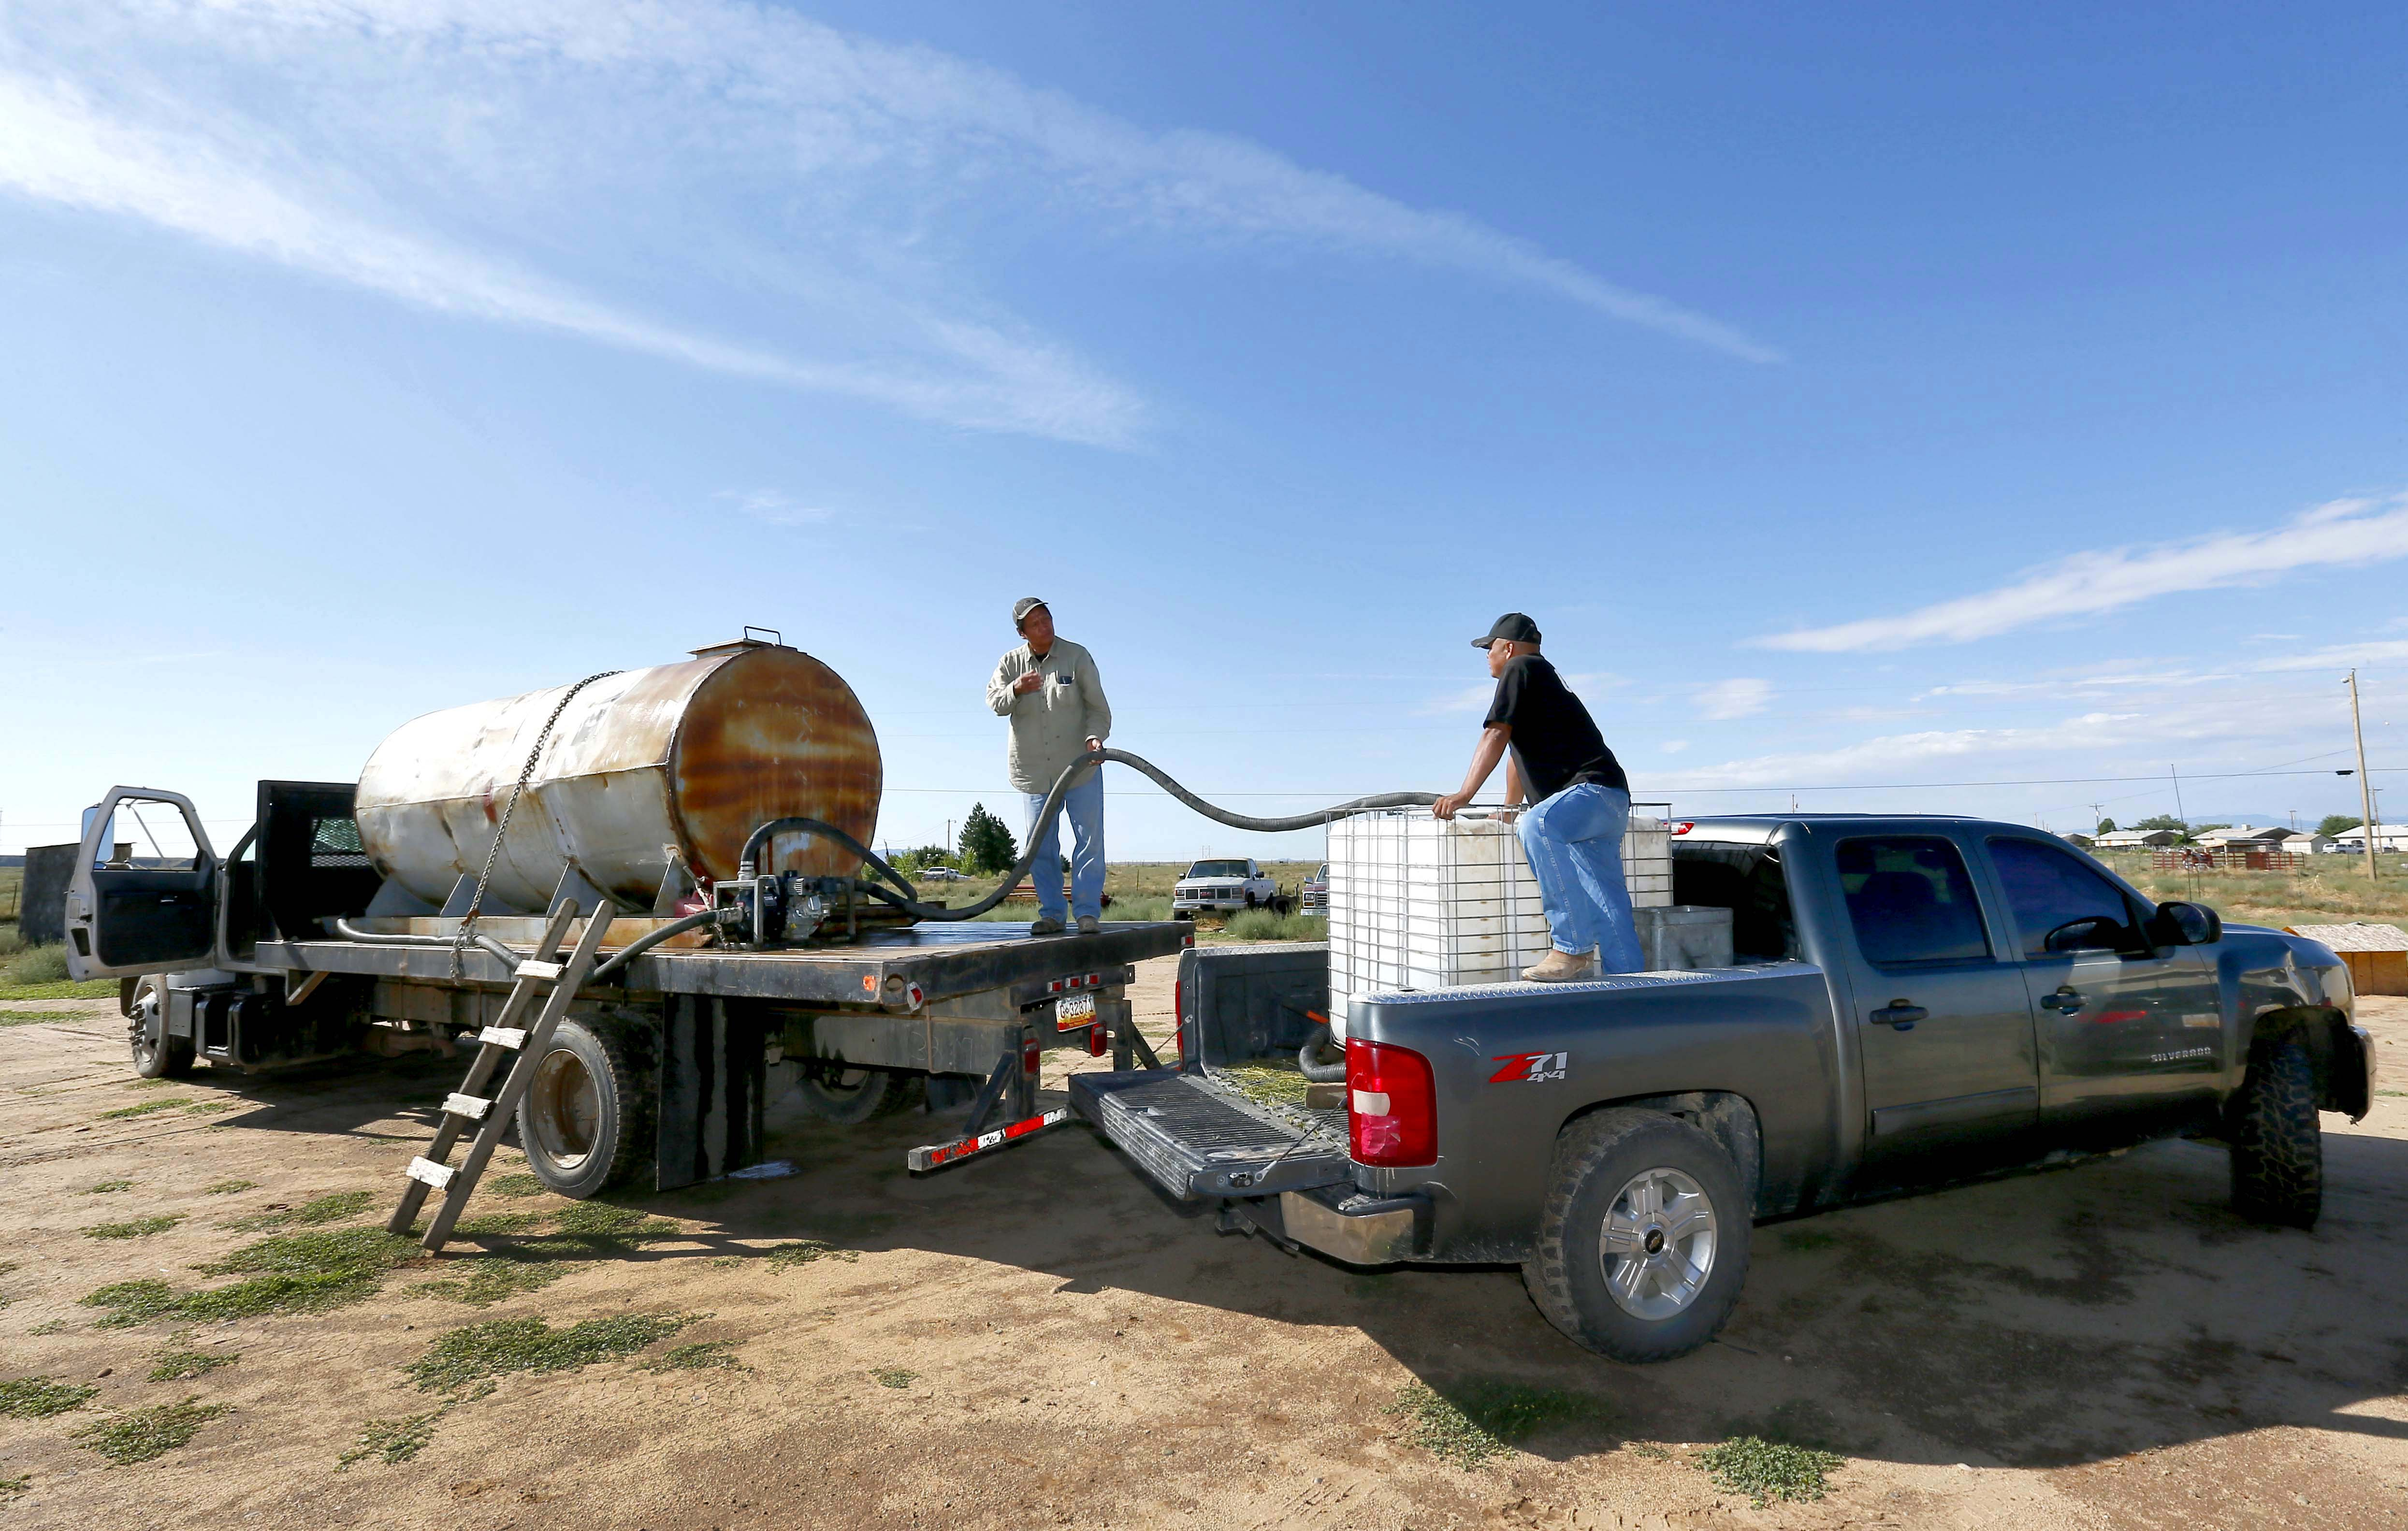 <p>Melvin Jones, left, delivers water to rancher Timothy Curley along the San Juan River on the Navajo Reservation, Wednesday, Aug. 12, 2015, in Shiprock, New Mexico.</p>